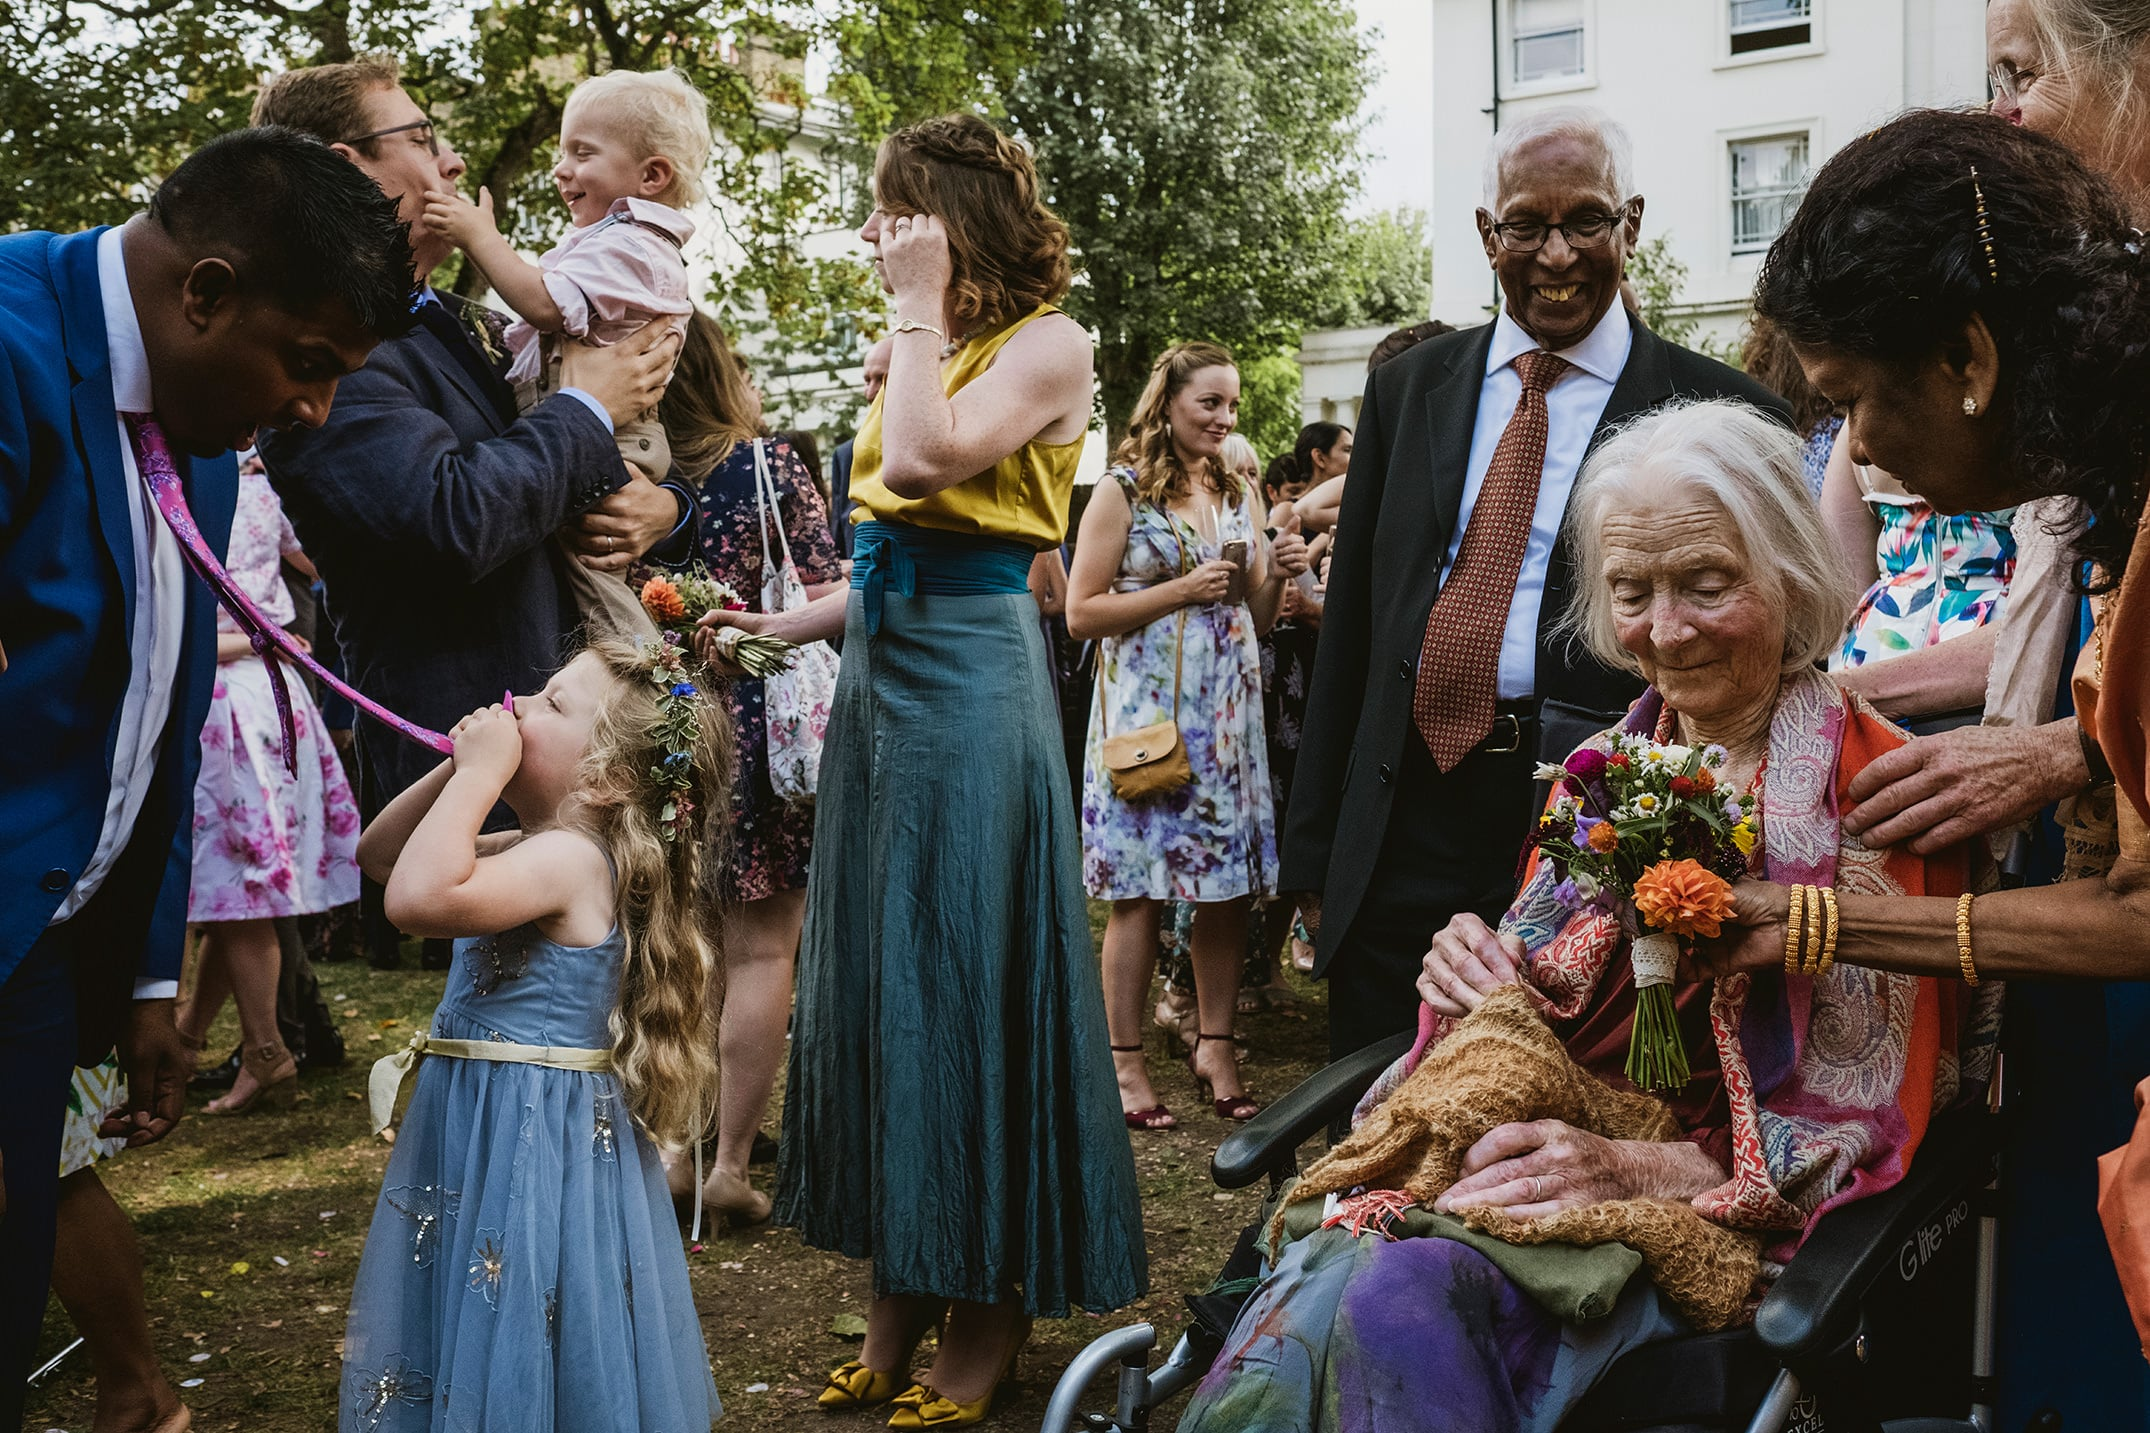 Cecil Sharp House Wedding Photography London Grandma being given flowers and little girl playing with her dad's tie